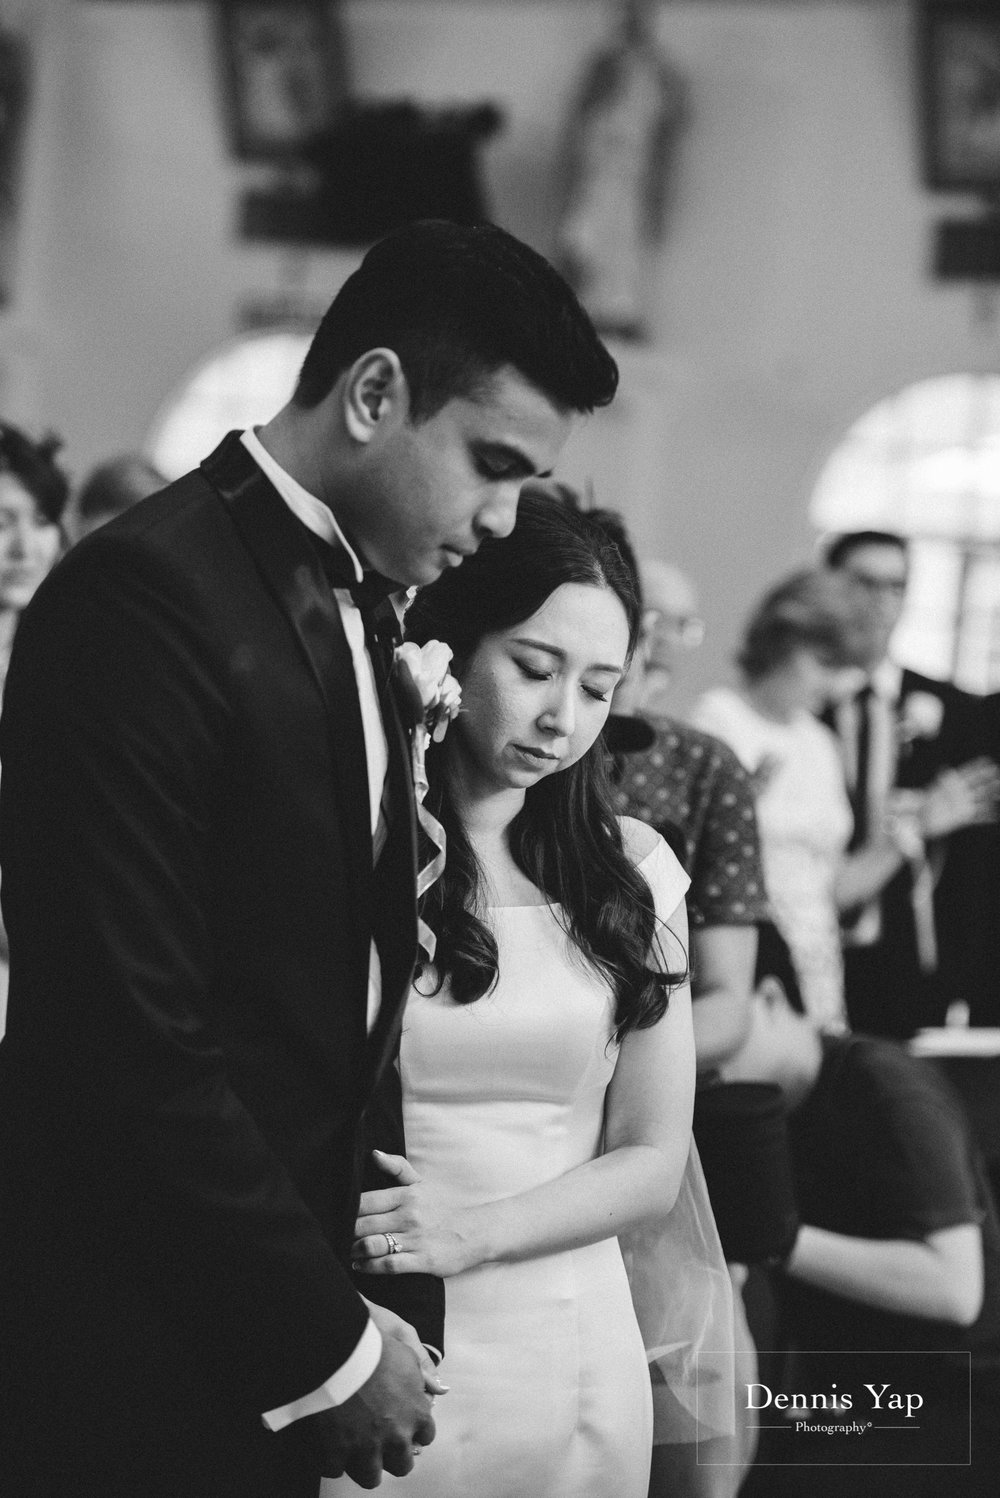 alroy teresa church wedding in church of divine mercy kuala lumpur malaysia wedding photographer dennis yap-23.jpg